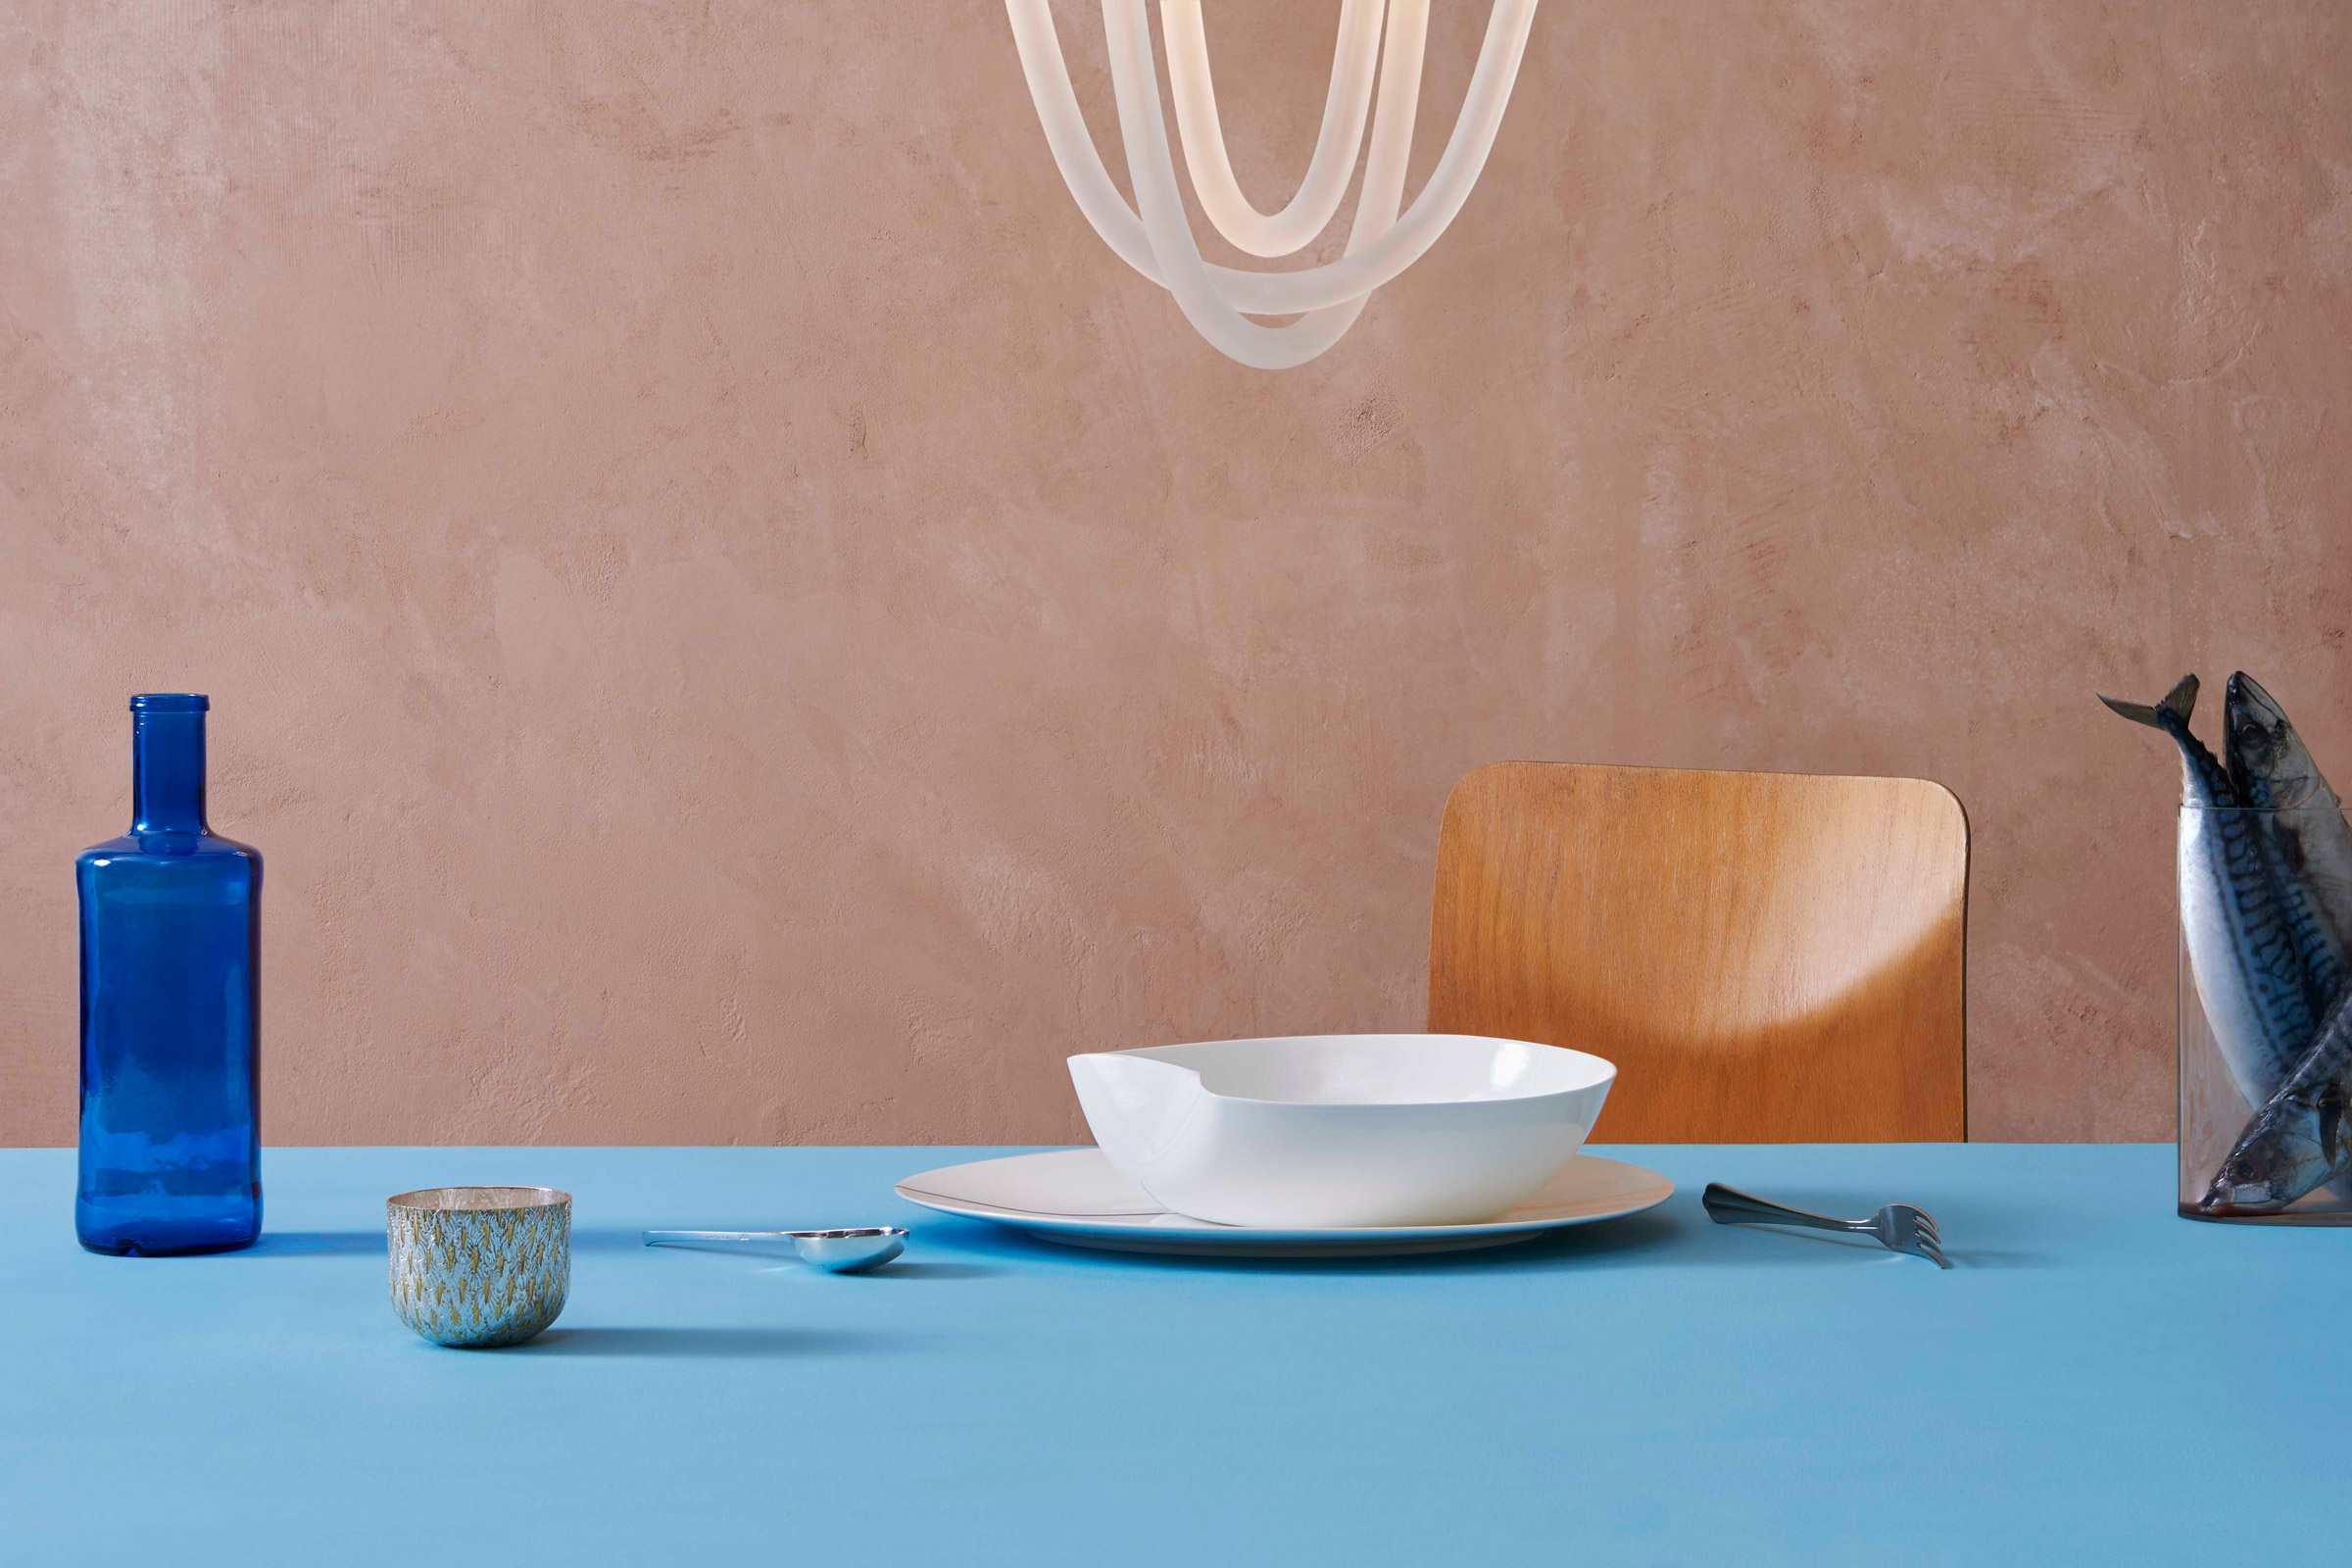 White Sculptural Ceramics Serving Bowl and Tane Silver Bowls designed by Bodo Sperlein